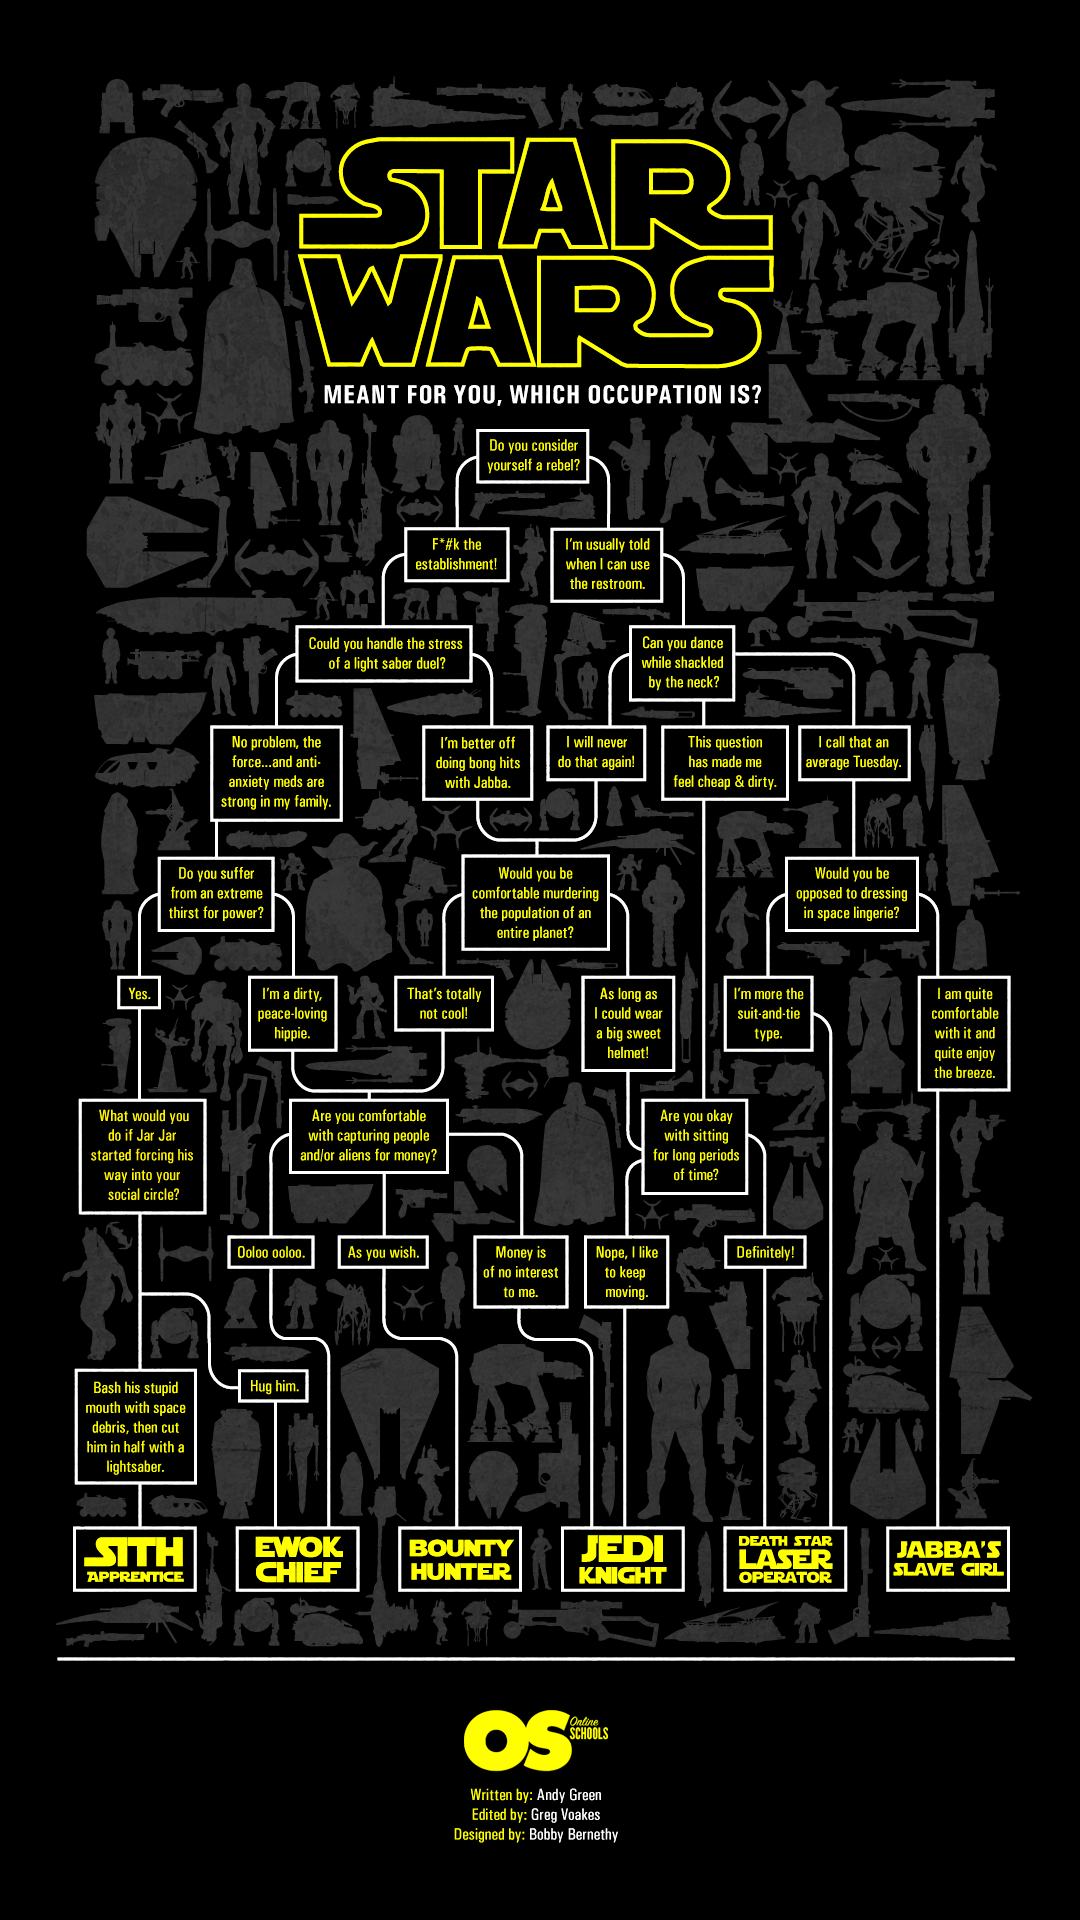 Star Wars Profession Flow Chart